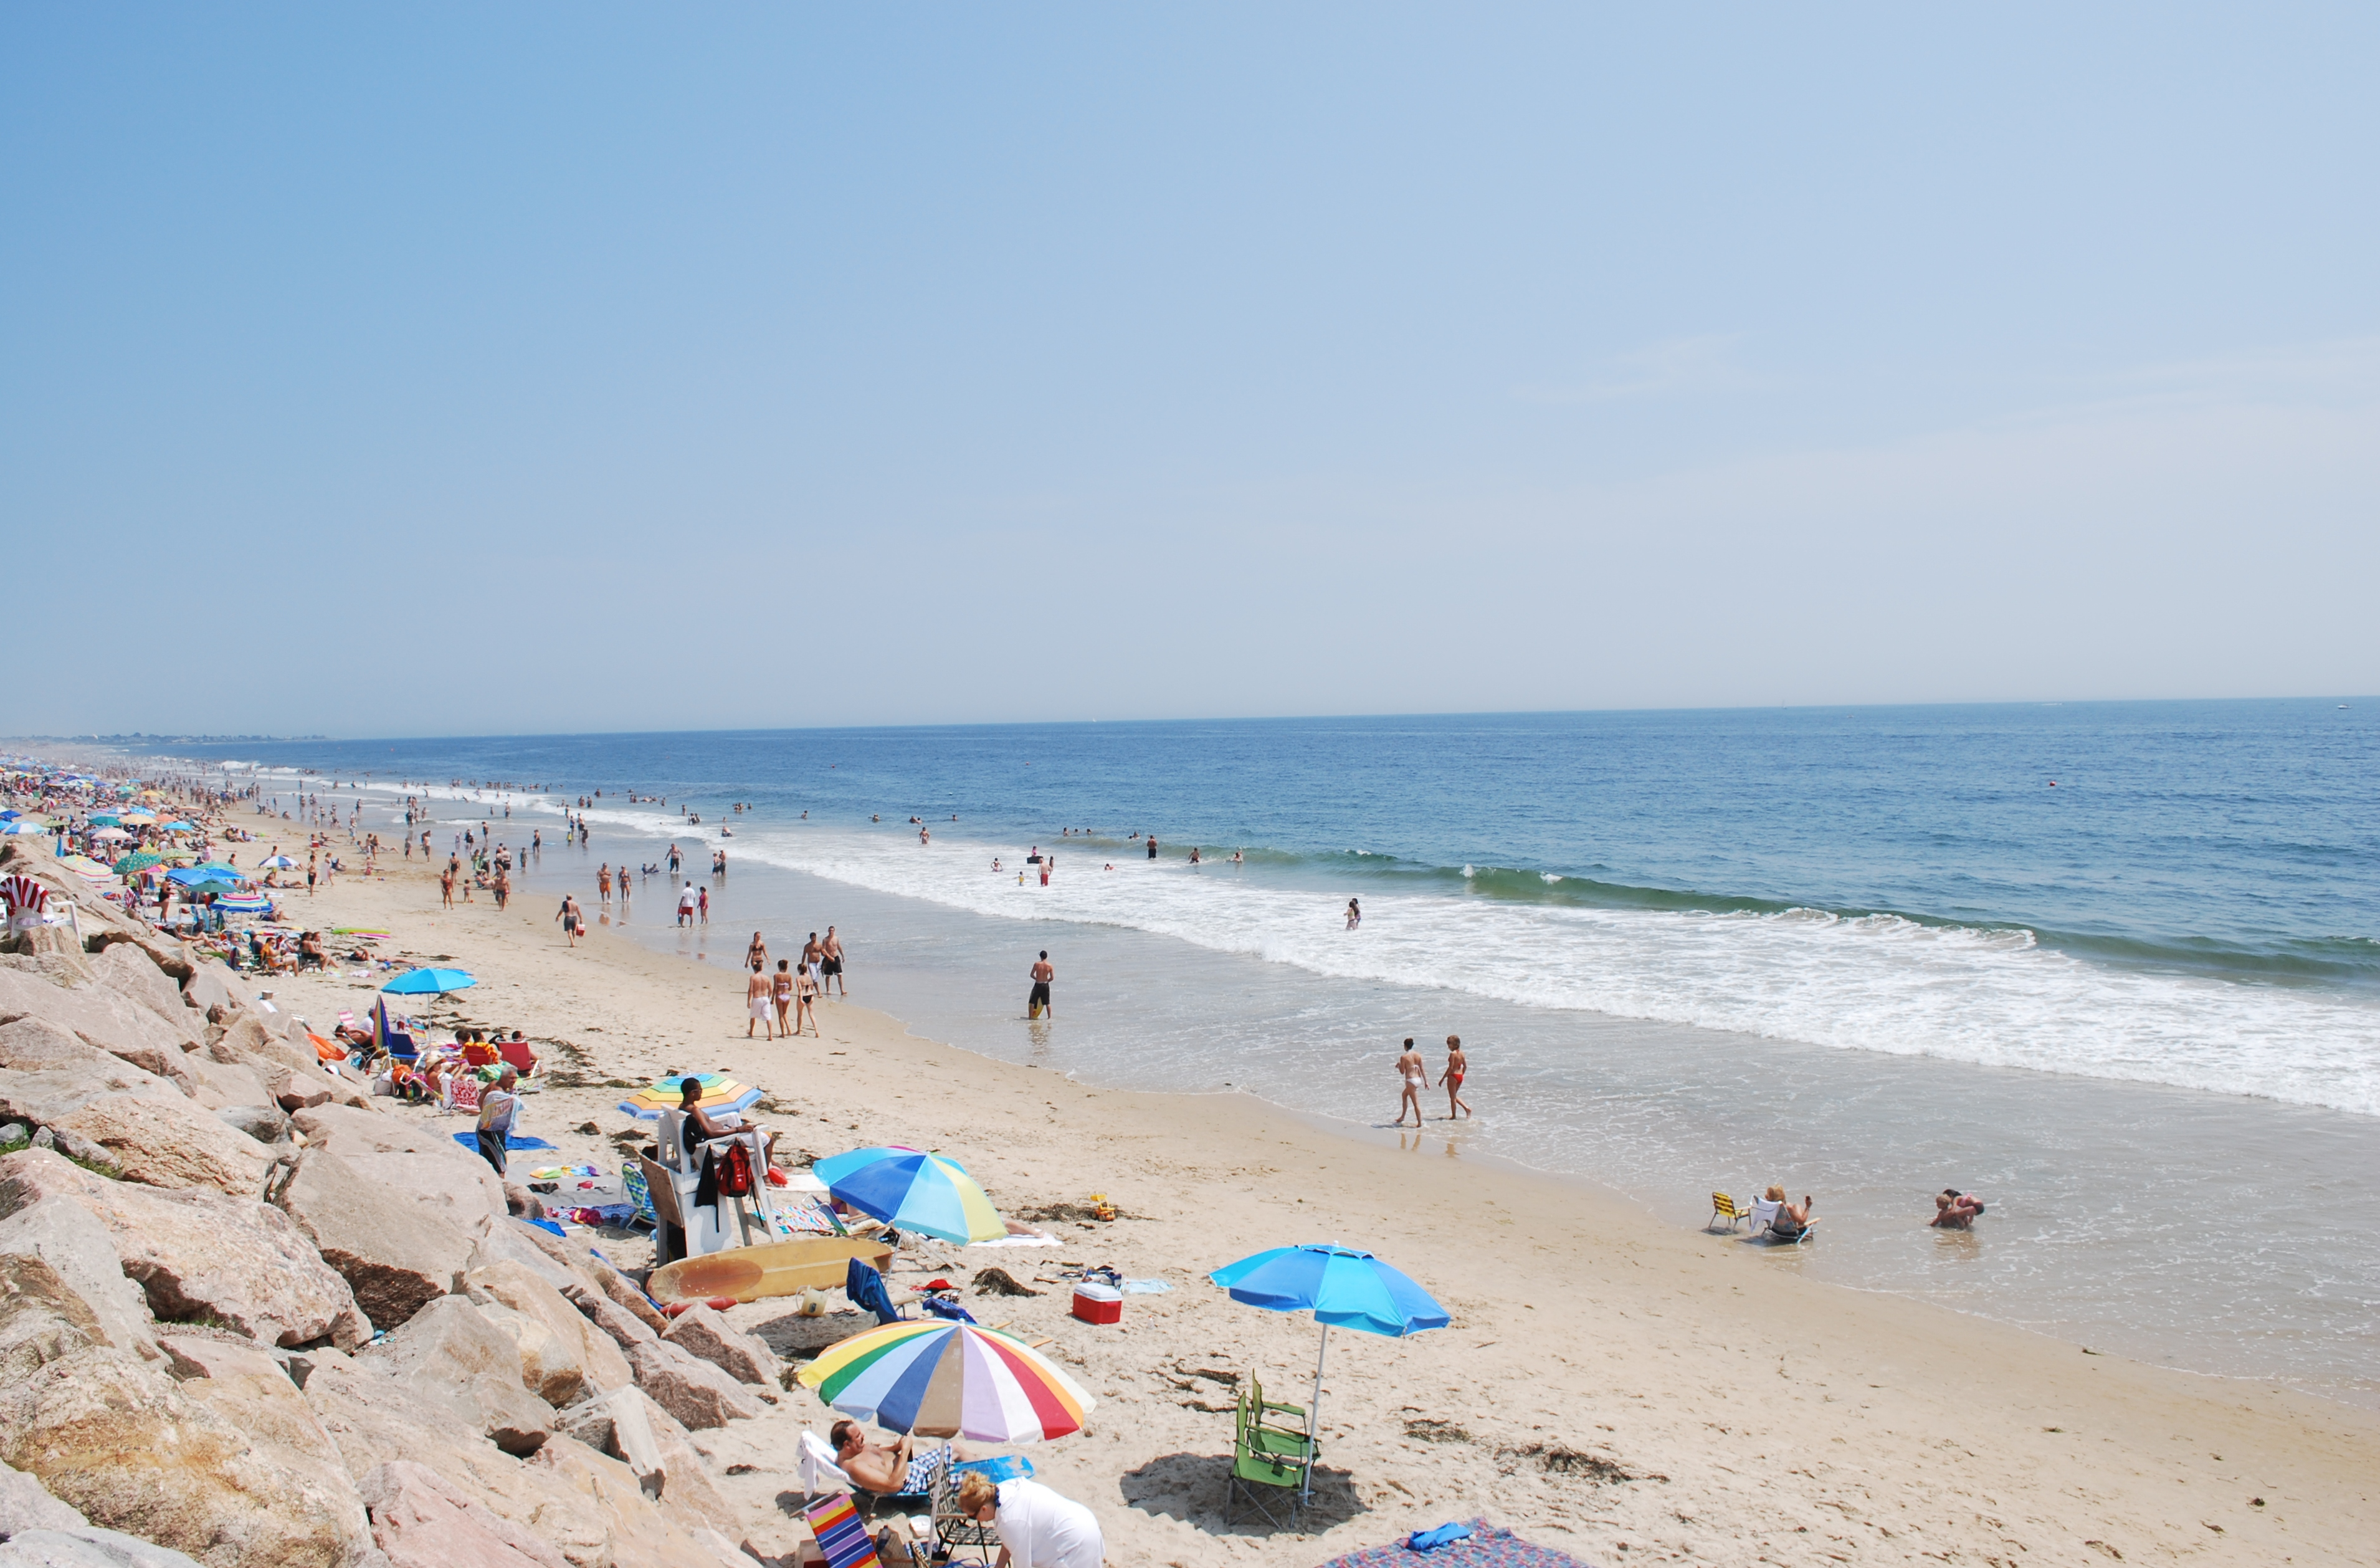 What State Is Misquamicut Beach